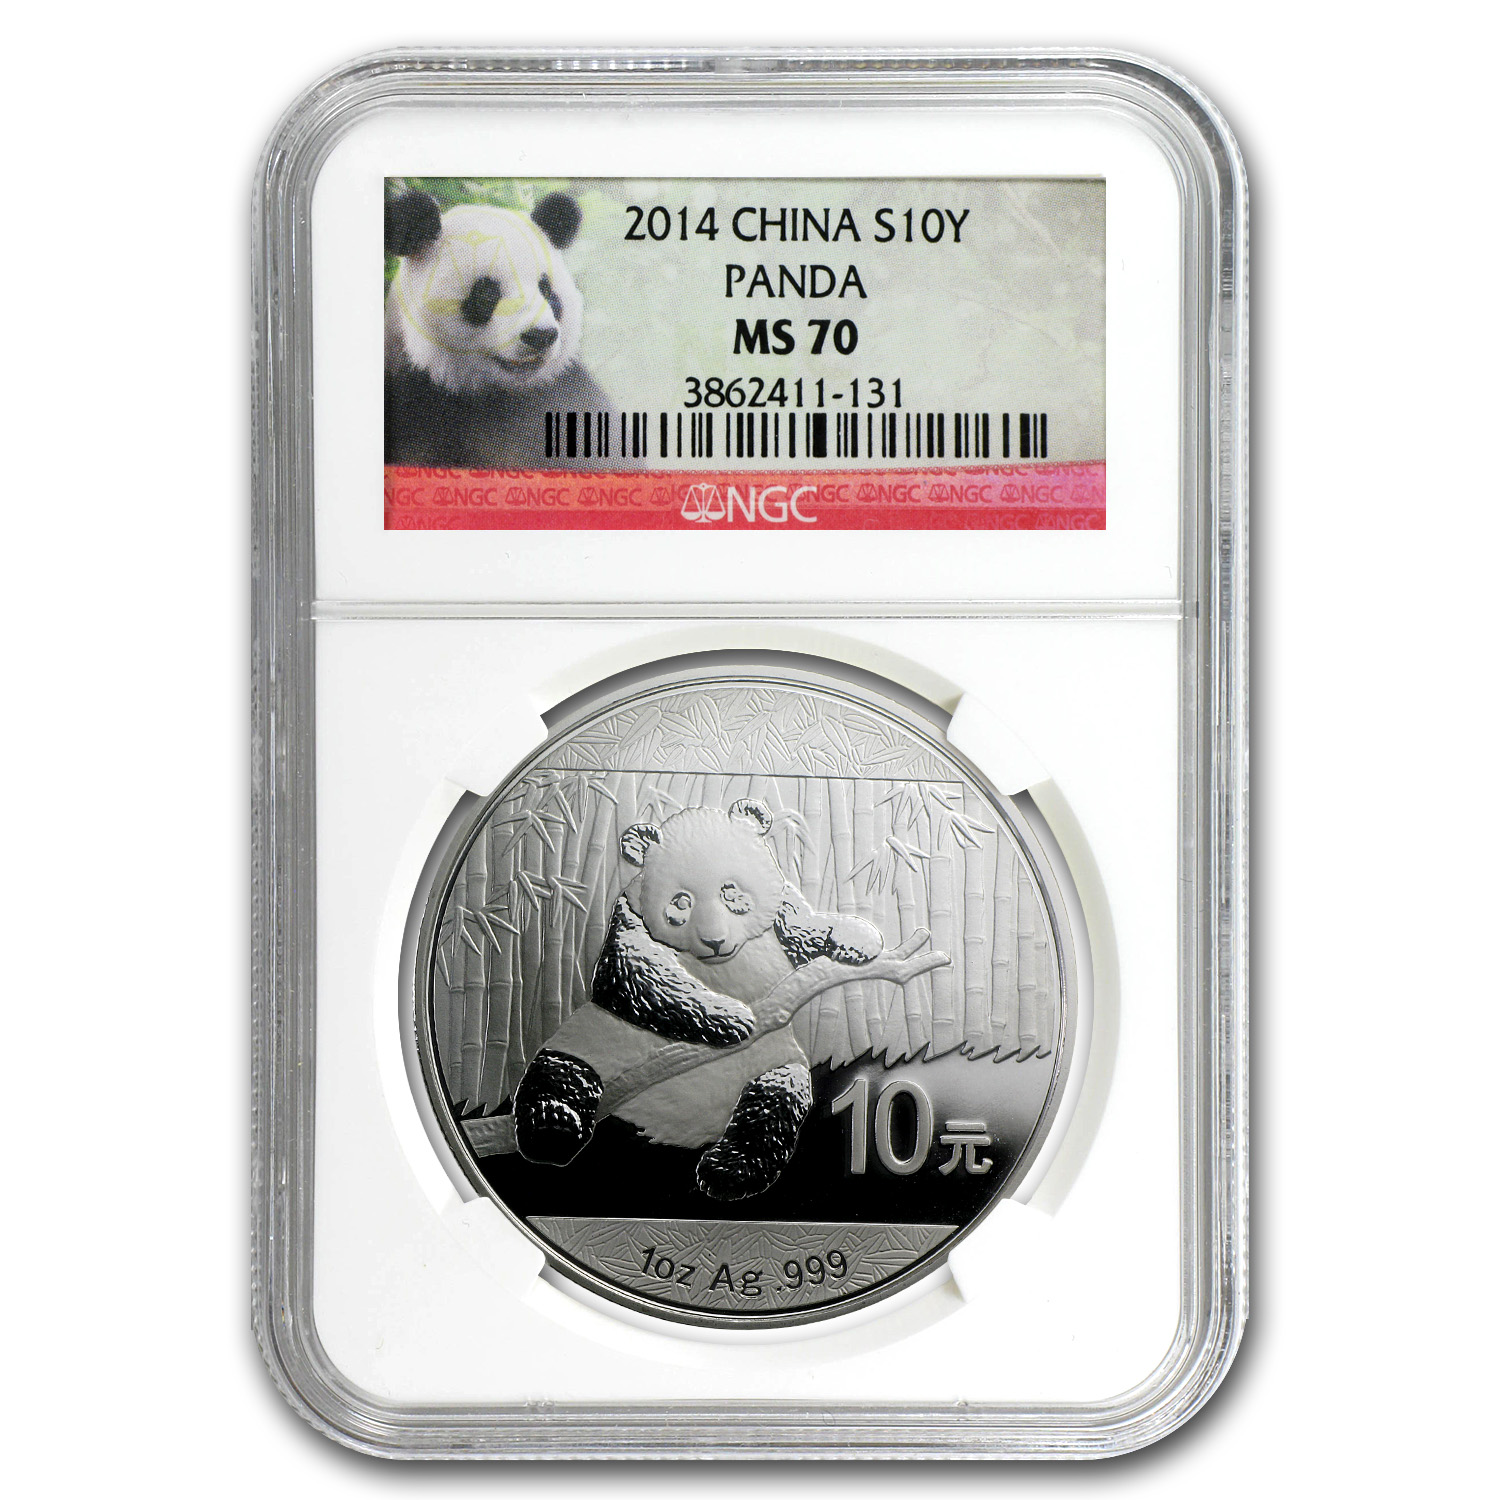 2014 1 oz Silver Chinese Panda - MS-70 NGC